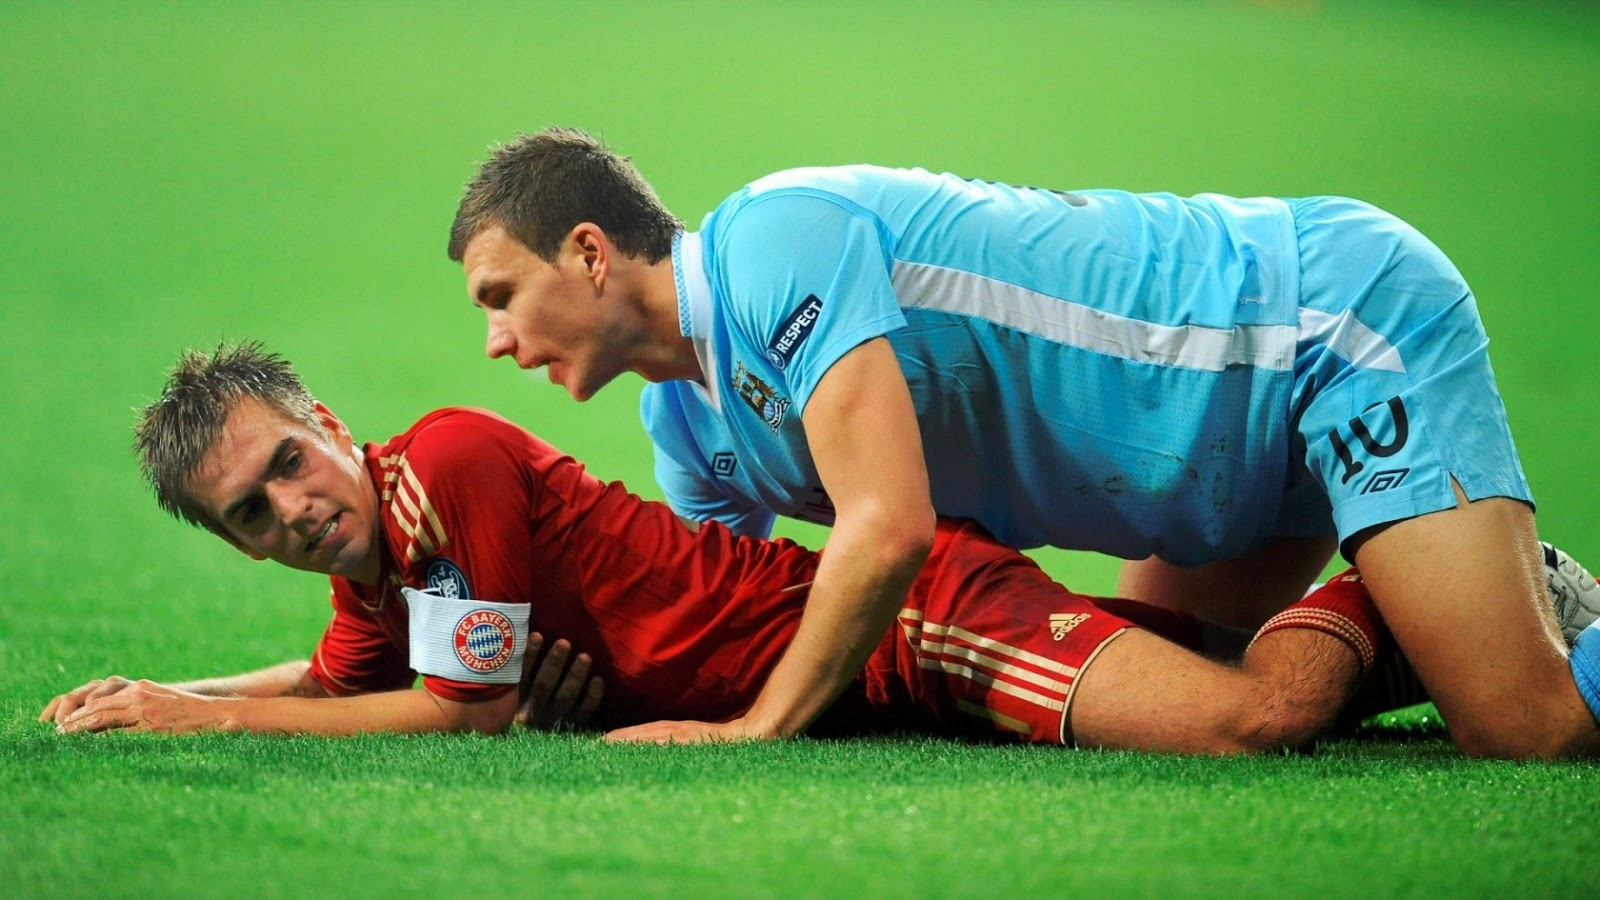 Funny Football Pictures Lahm and Dzeko Wallpaper - HD